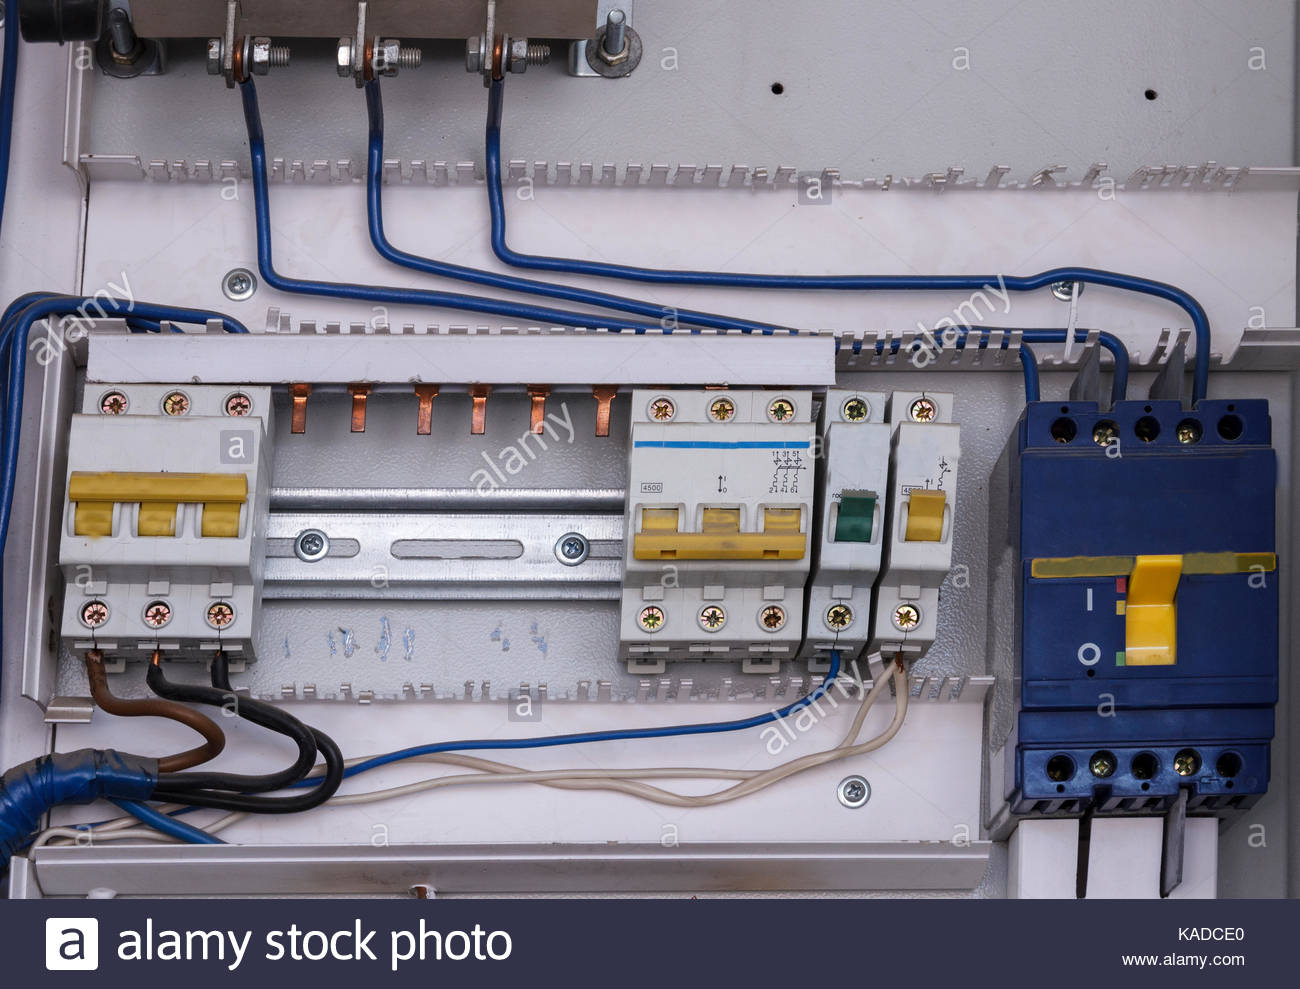 Electrical Panel Circuit Breakers Stock Photos Wiring Motor Breaker Control With For Electric During Mantenance Image